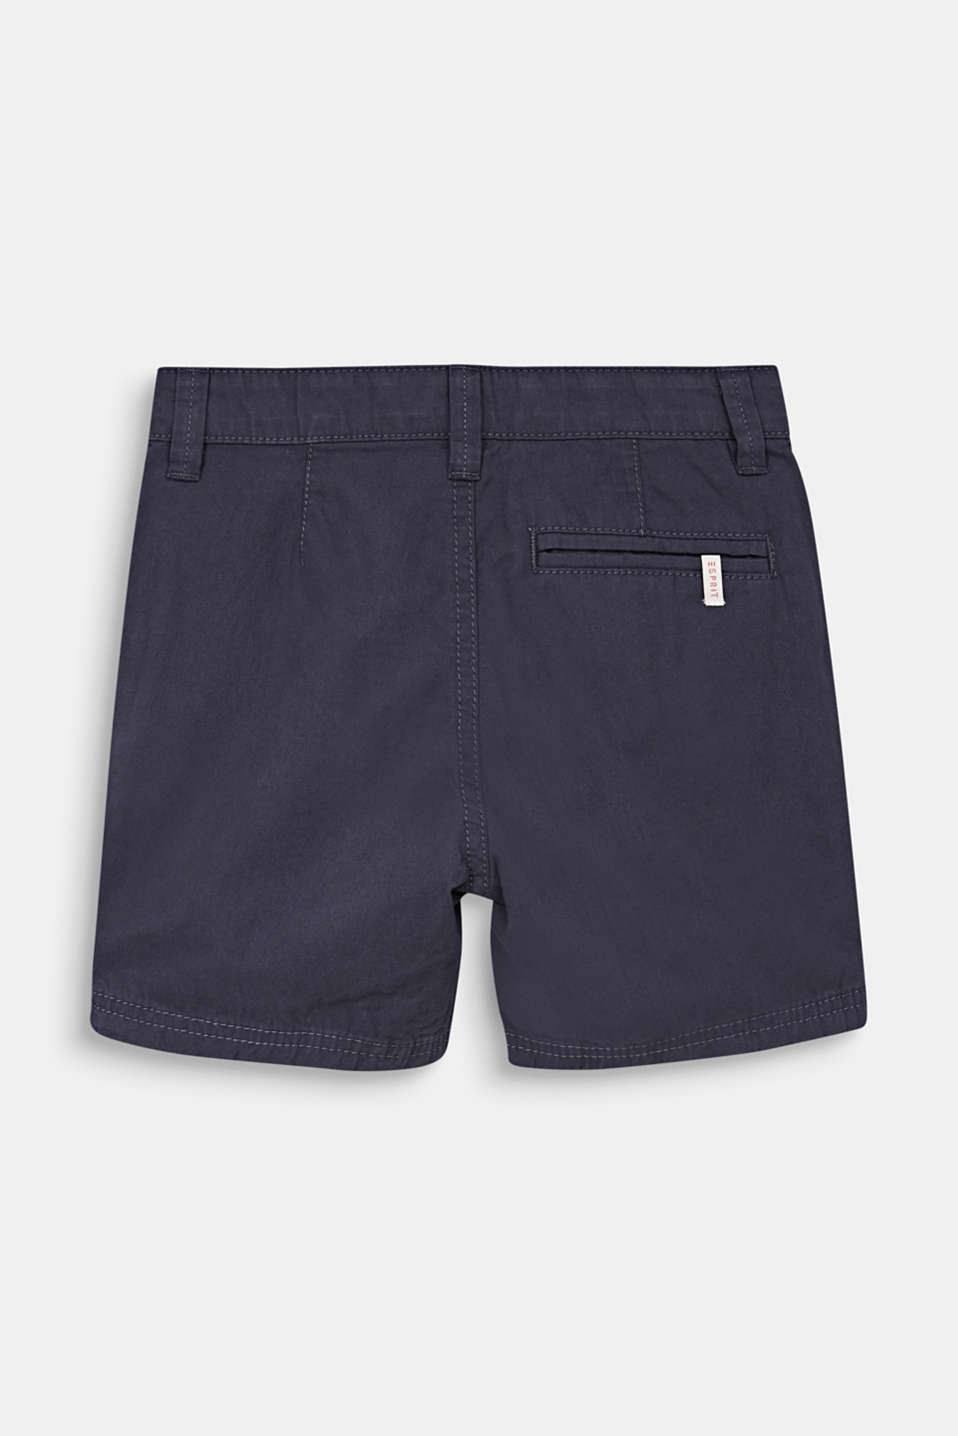 Woven shorts in 100% cotton, ANTHRACITE, detail image number 1